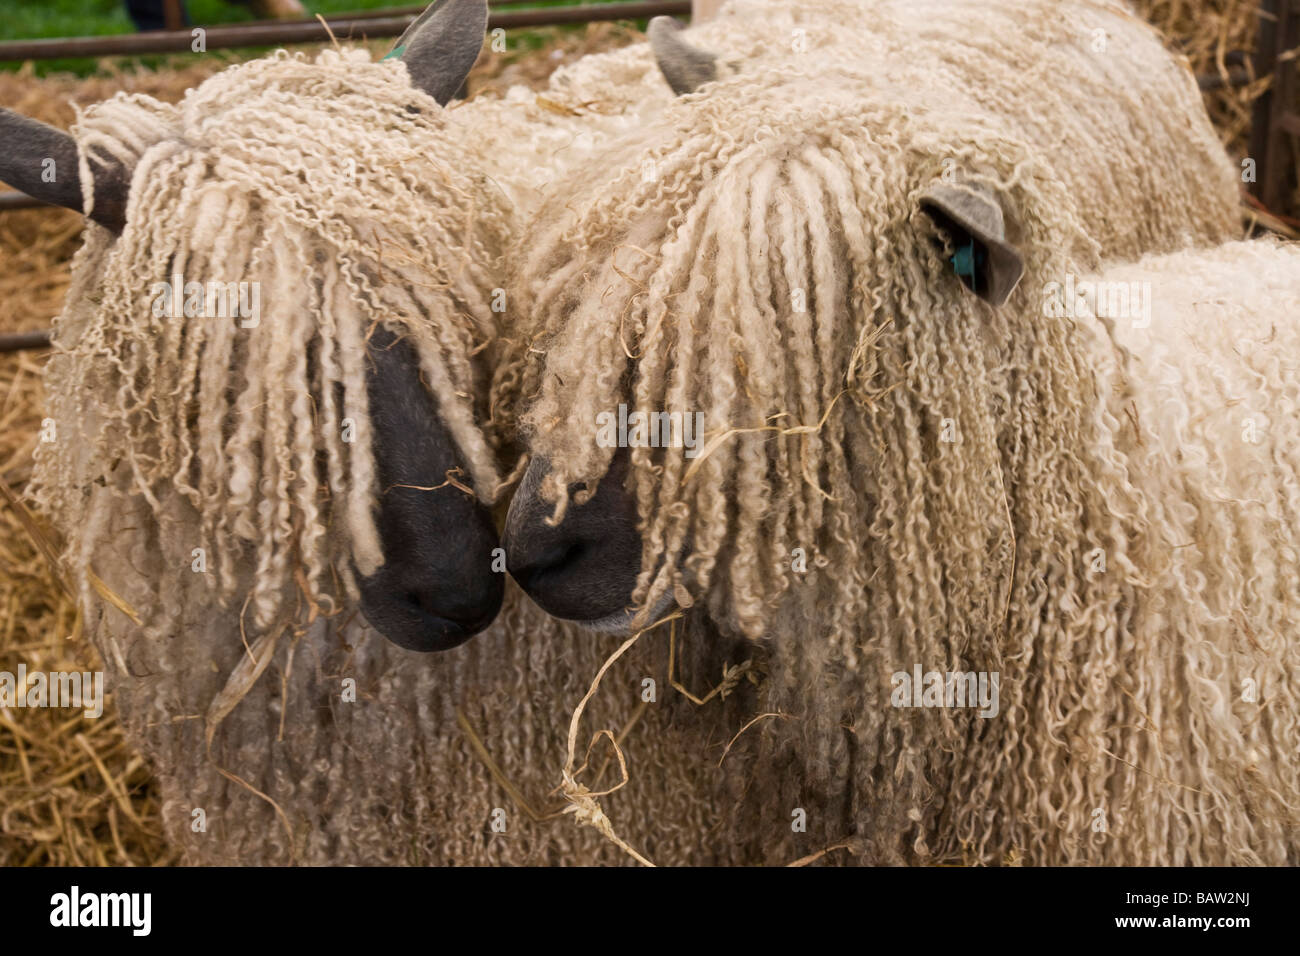 Two Wensleydale sheep. A rare breed of sheep from the Yorkshire Dales. - Stock Image